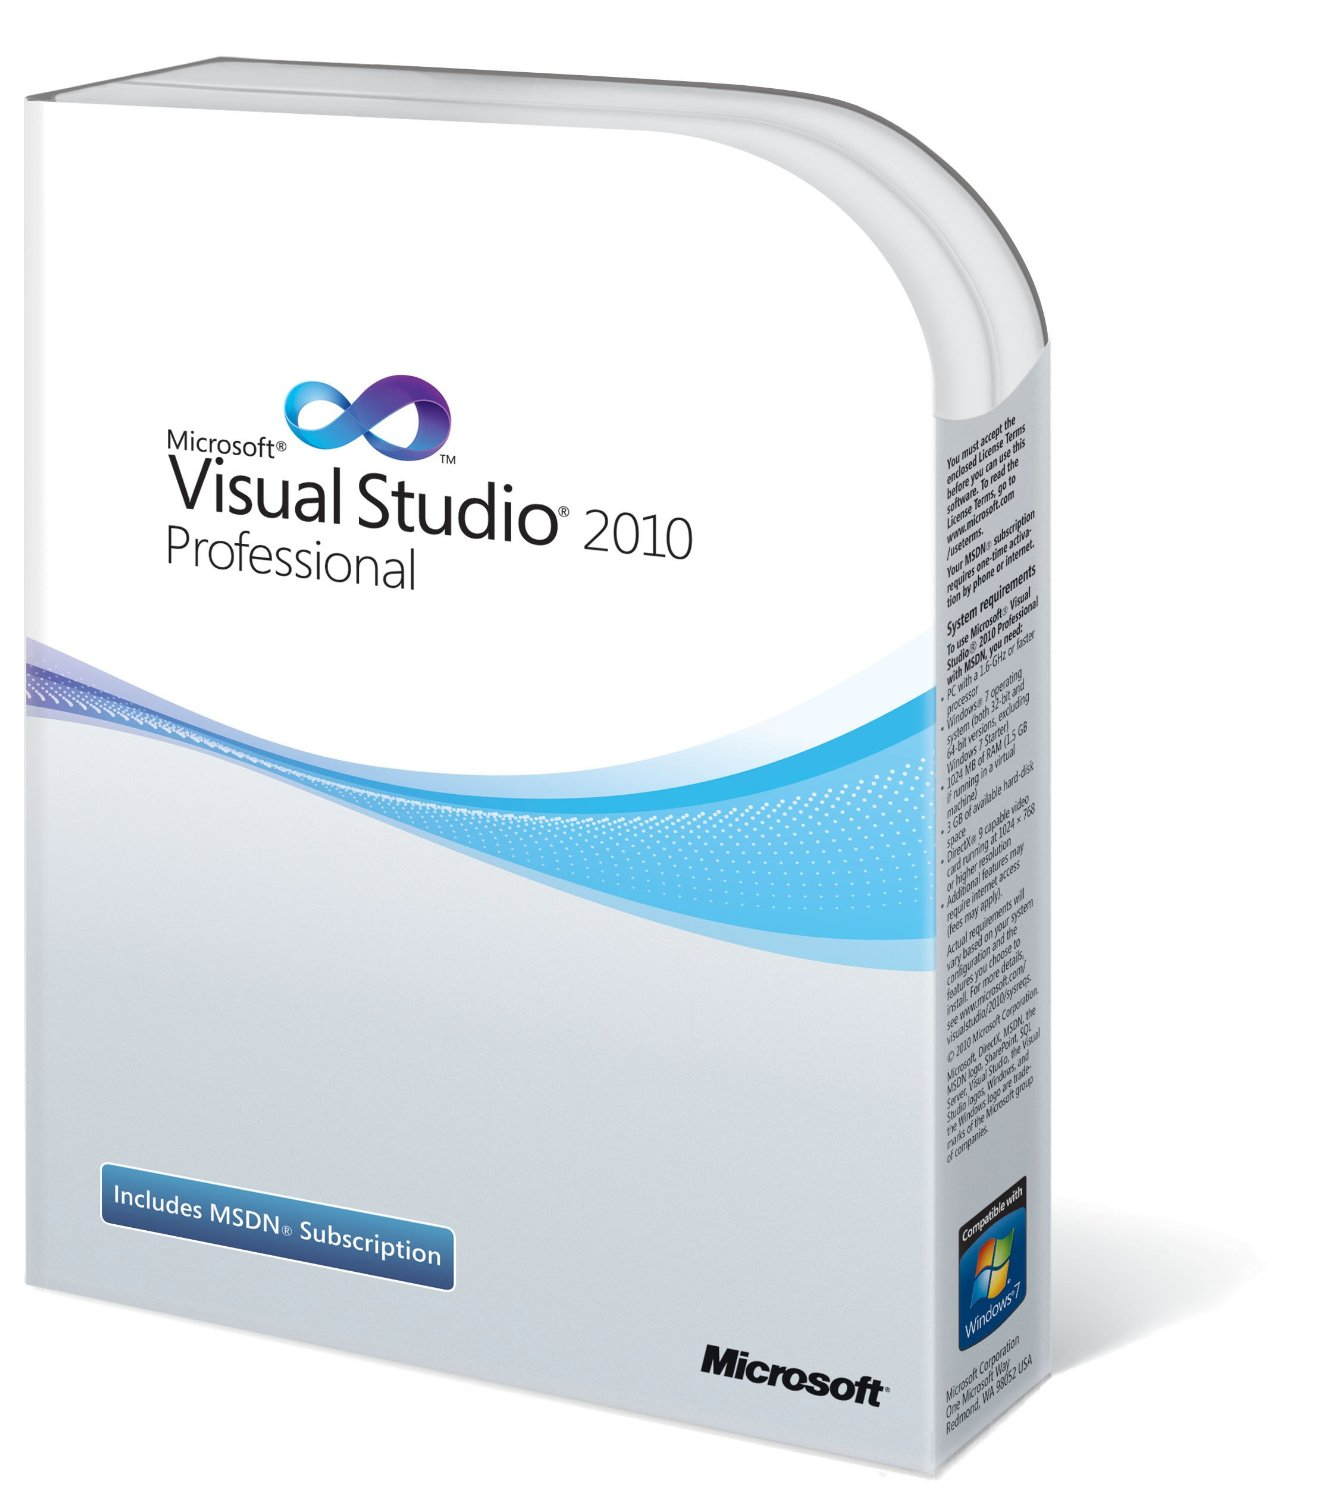 Microsoft Visual Studio 2010 Professional Free Download